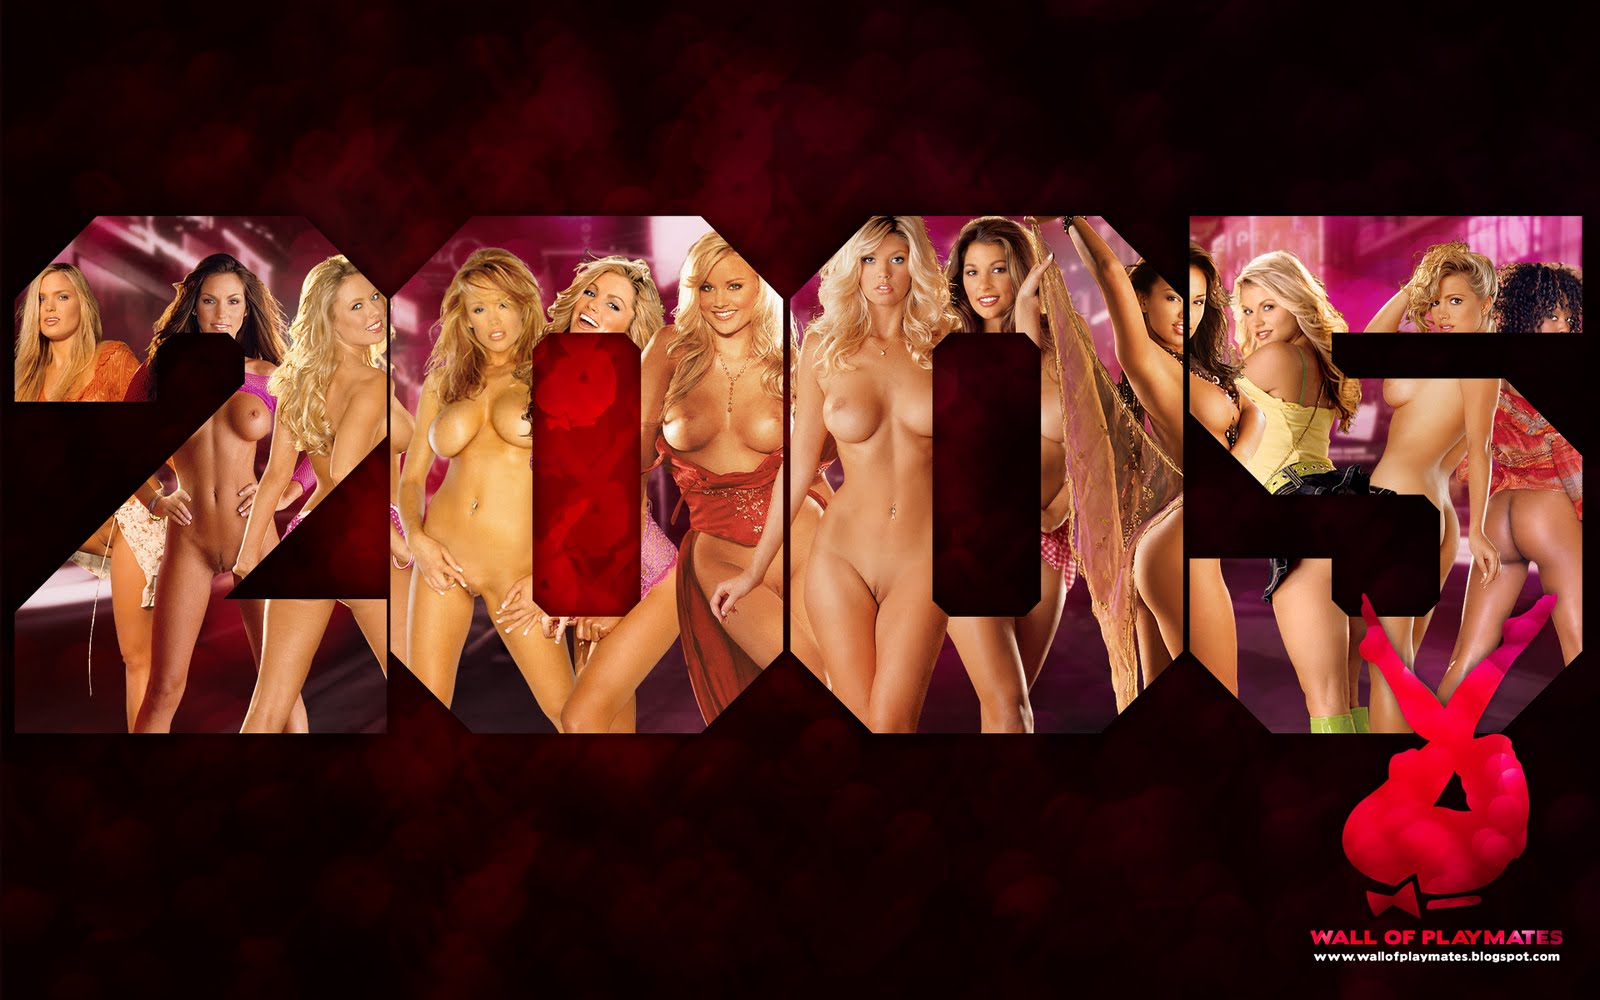 Wall Of Playmates Playmate Wallpapers